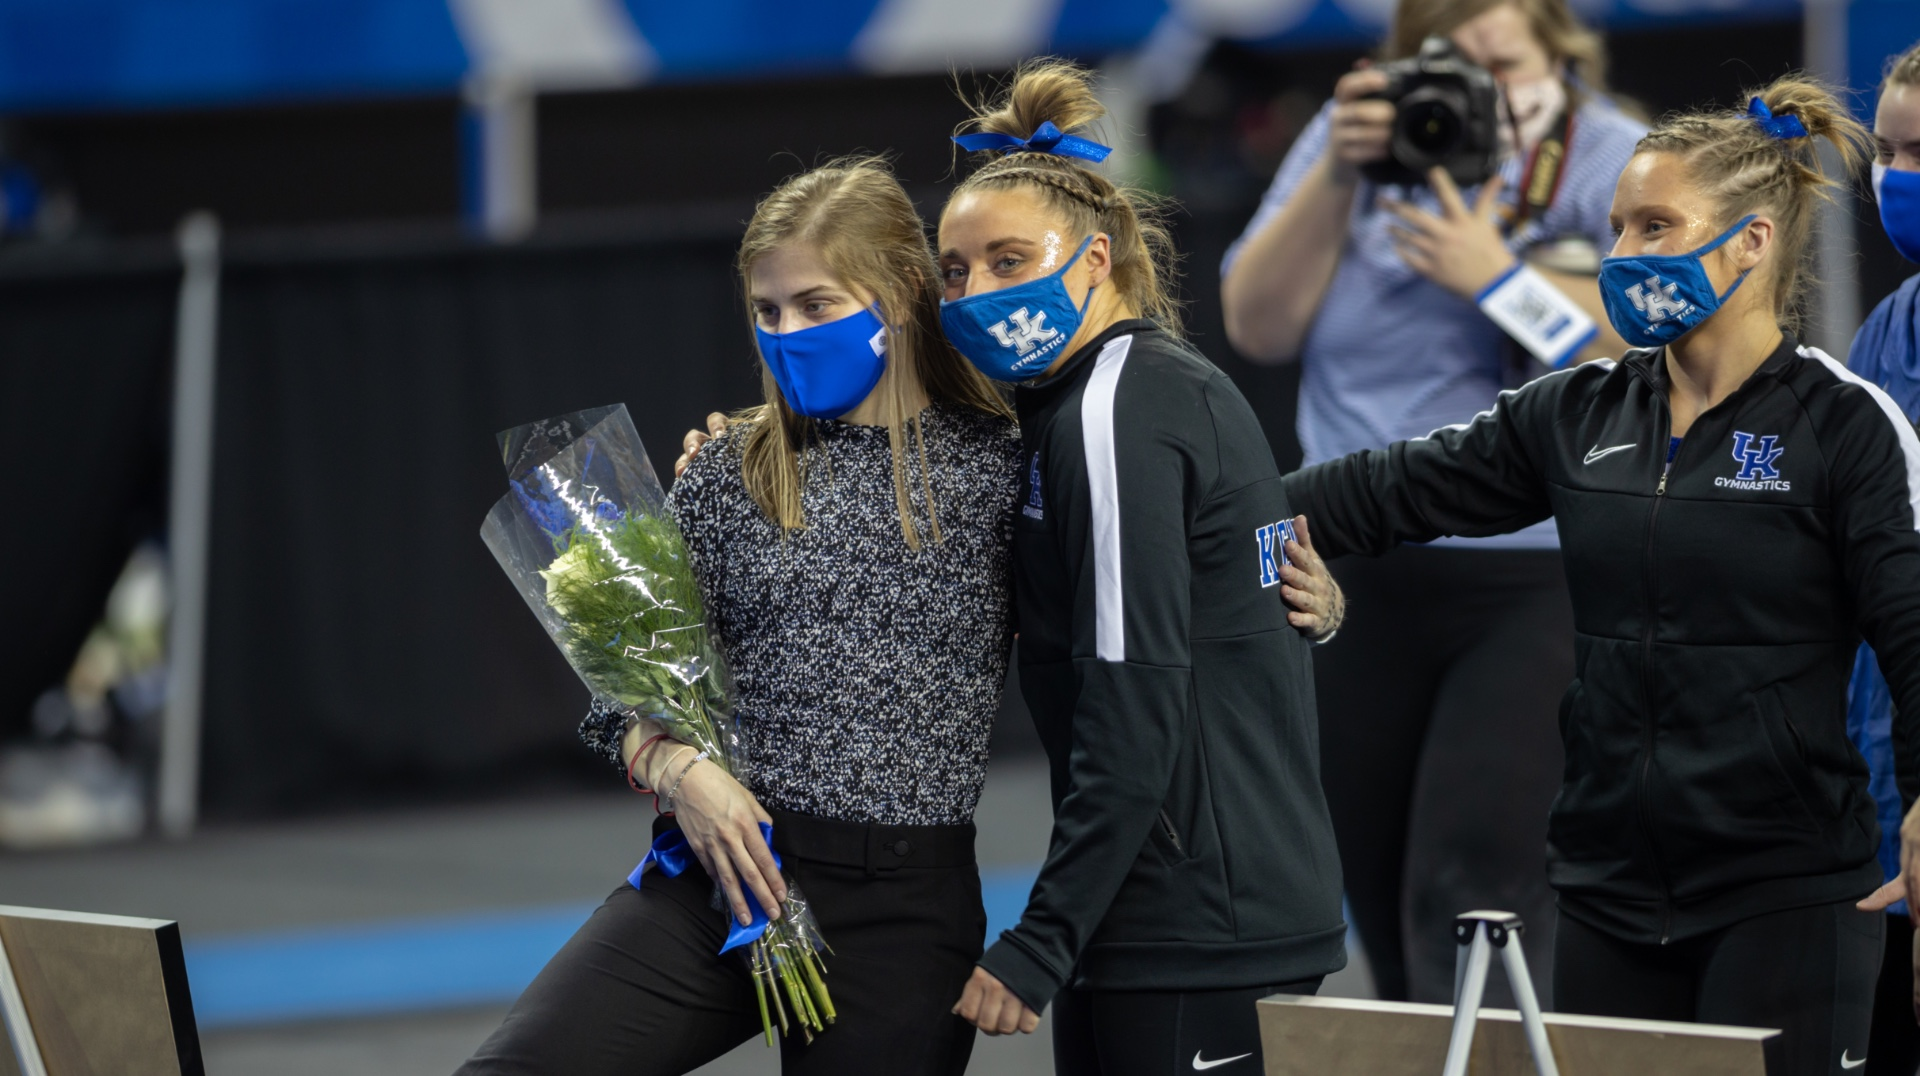 Allison poses for a photo with a fellow gymnastics teammate. They have their arms around each other. Allison is holding a bouquet of flowers. Both are wearing blue facemasks.